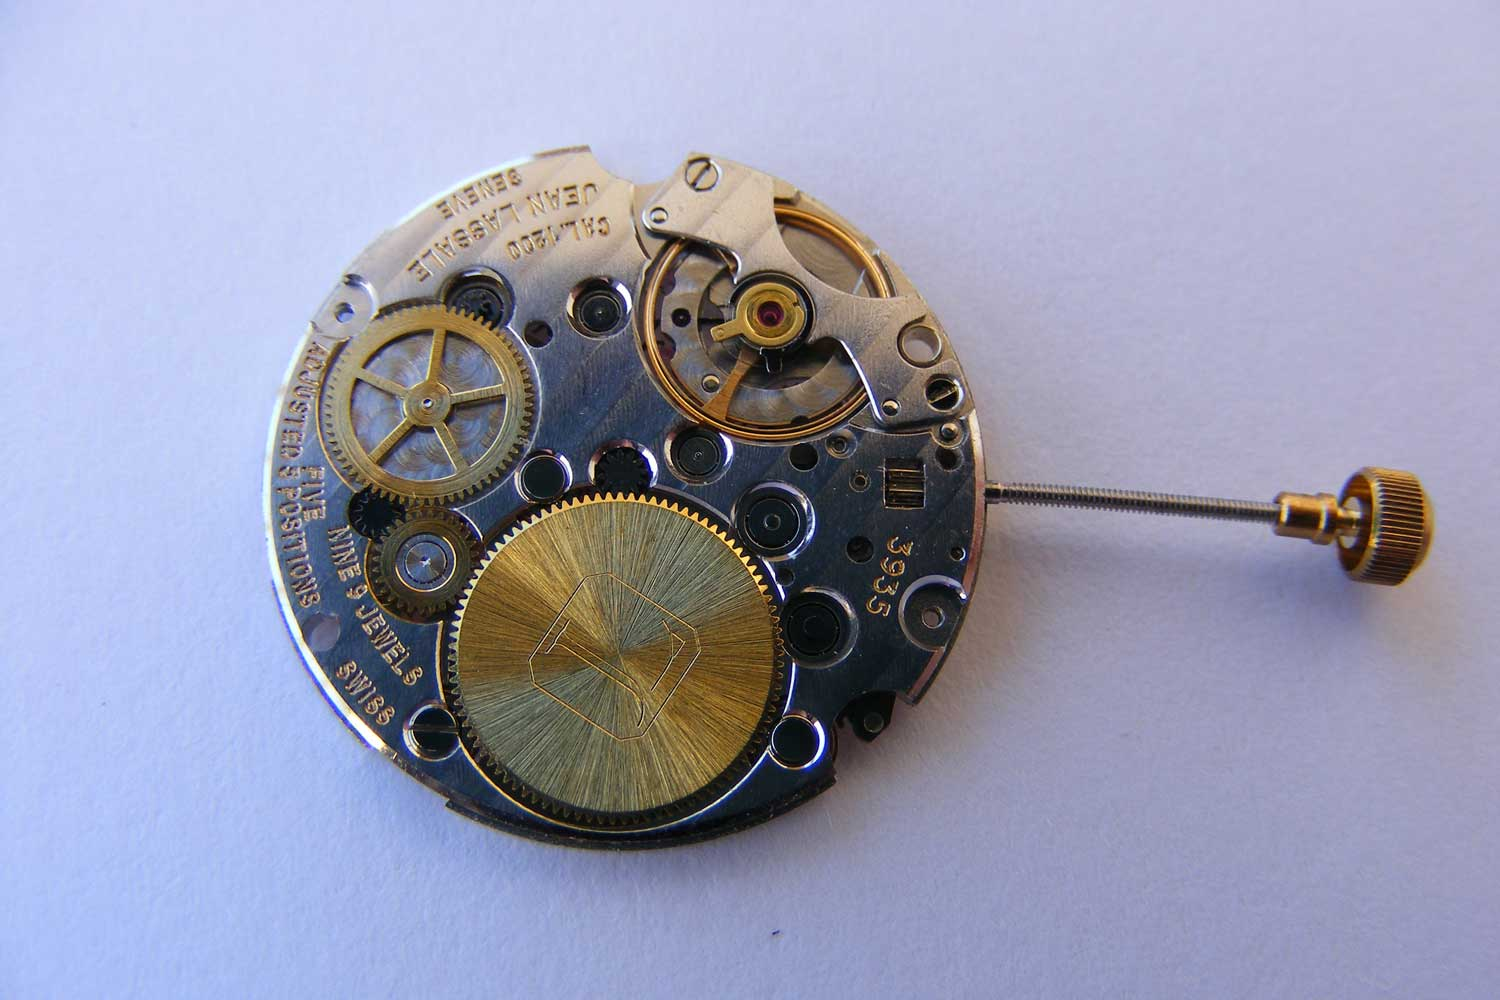 In 1976, Jean Lassale created a manual wind caliber that was a mere 1.2mm in thickness and named the Calibre 1200; the barrel and gear train of this movement was suspended meaning they were only supported from one point from the back rather than having an upper bridge, this meant they couldn't be supported with traditional jeweled pinions, they were secured in place using ball bearings (Image: commons.wikimedia.org)